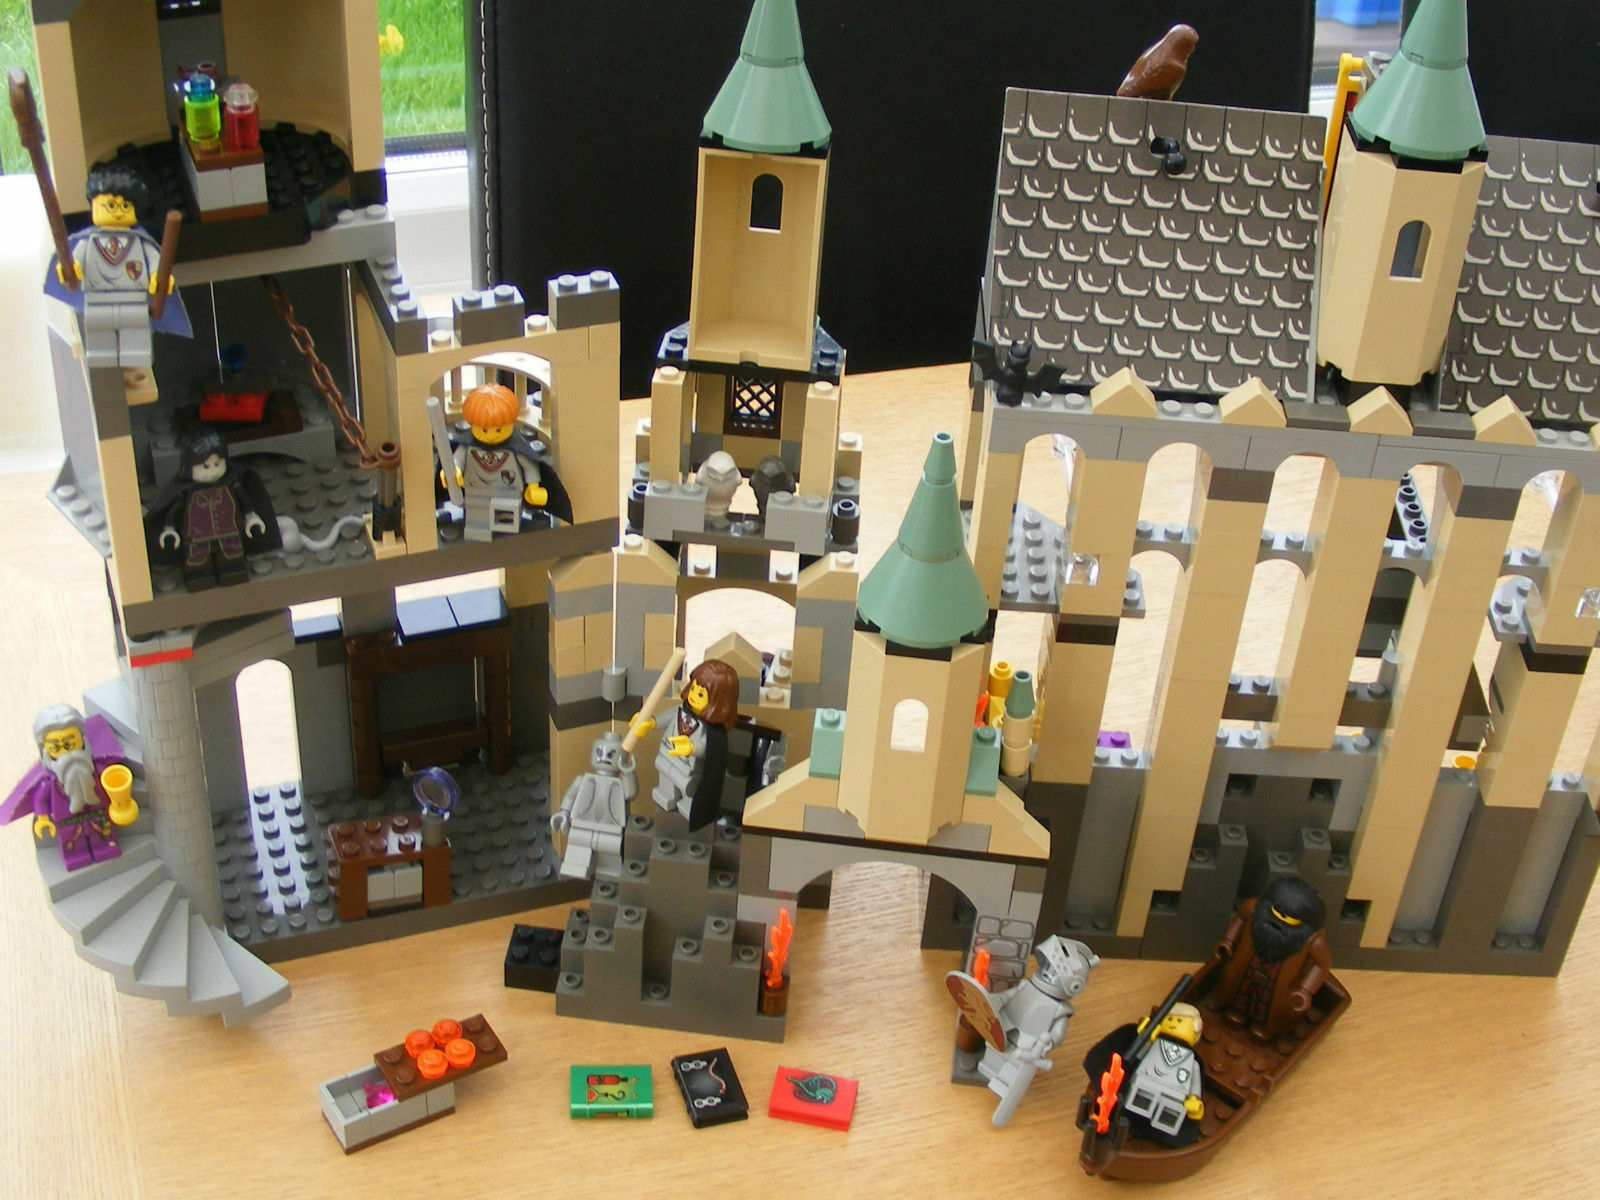 Lego HARRY POTTER 4709 HOGWARTS CASTLE COMPLETE + INSTRUCTIONS GOOD COND. REF103